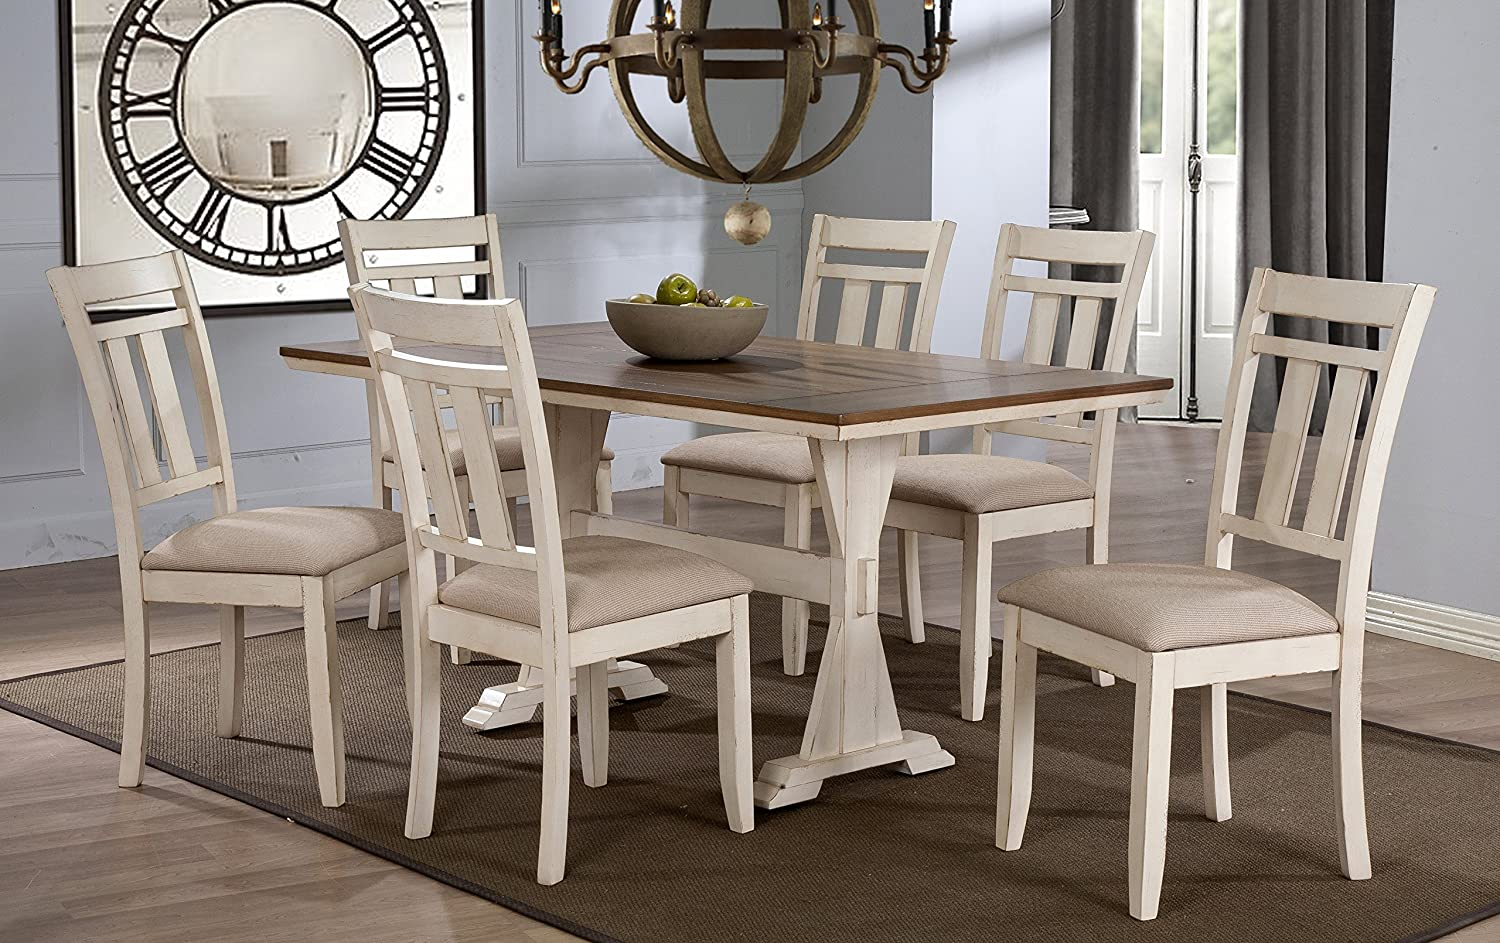 Baxton Studio Wholesale Interiors 7 Piece Roseberry Shabby Dining Set With Trestle Base 60 Fixed Top Dining Table Oak Distressed White